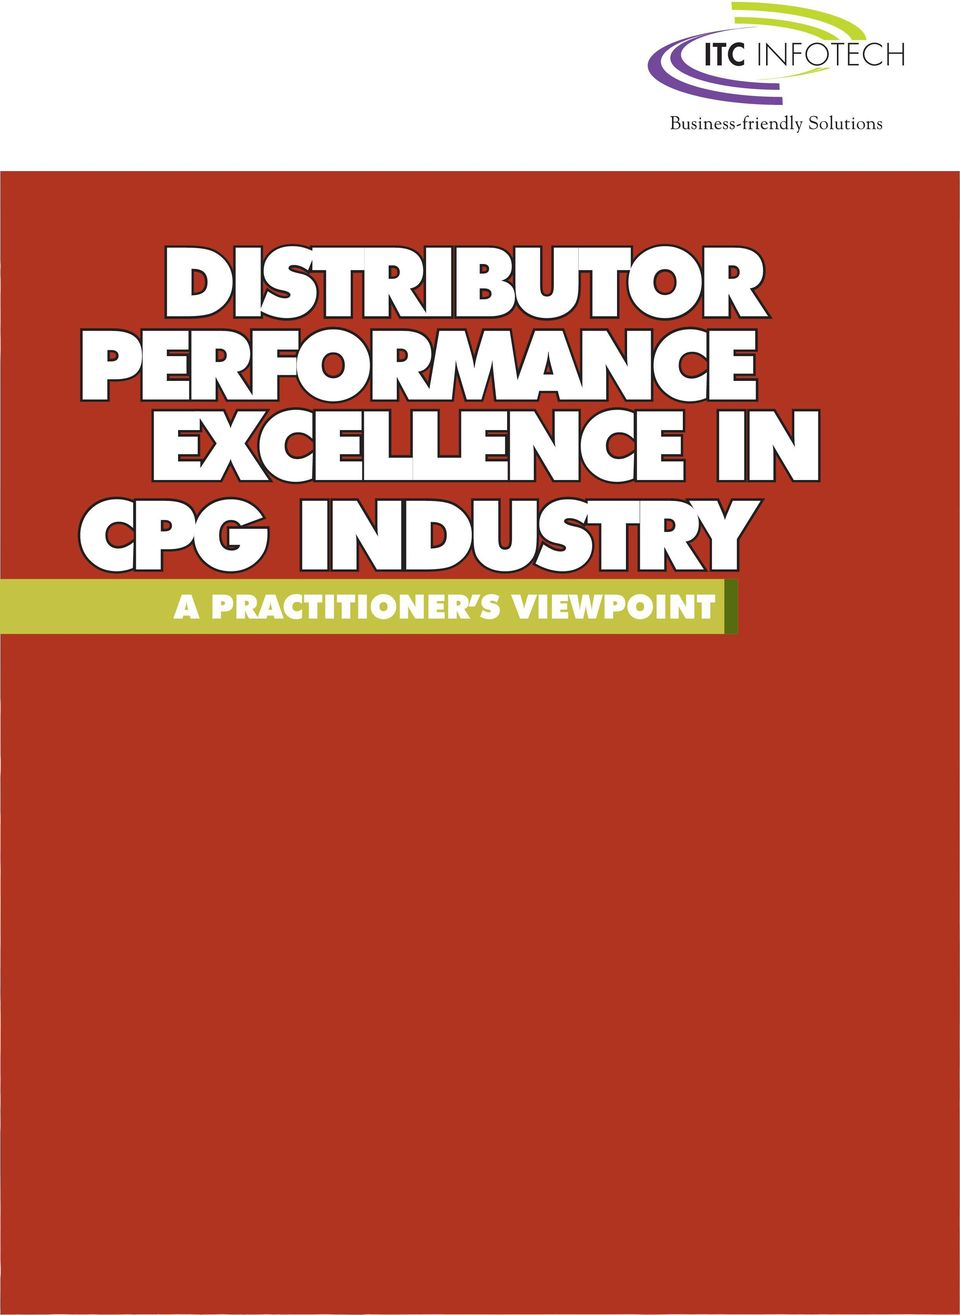 EXCELLENCE IN CPG